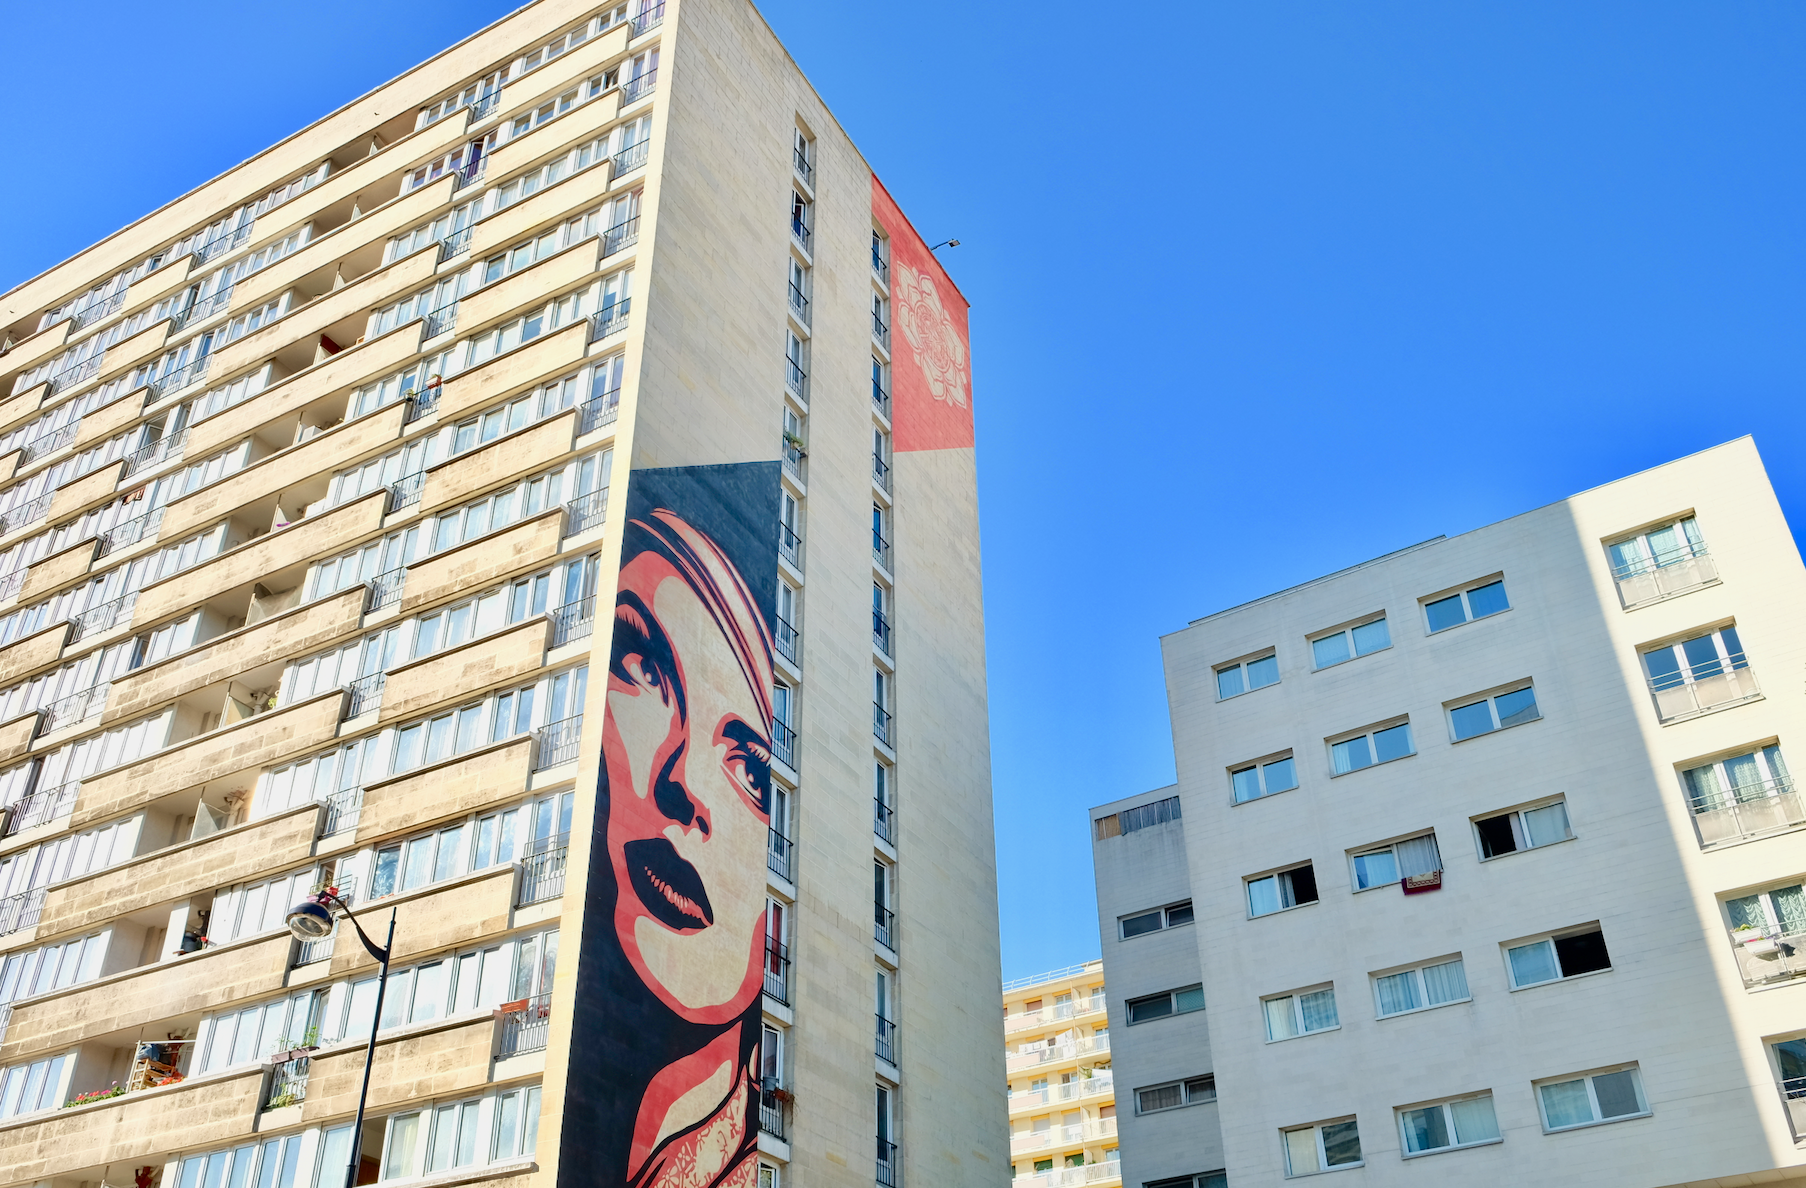 Street art paris 13 Obey Shepard Fairey